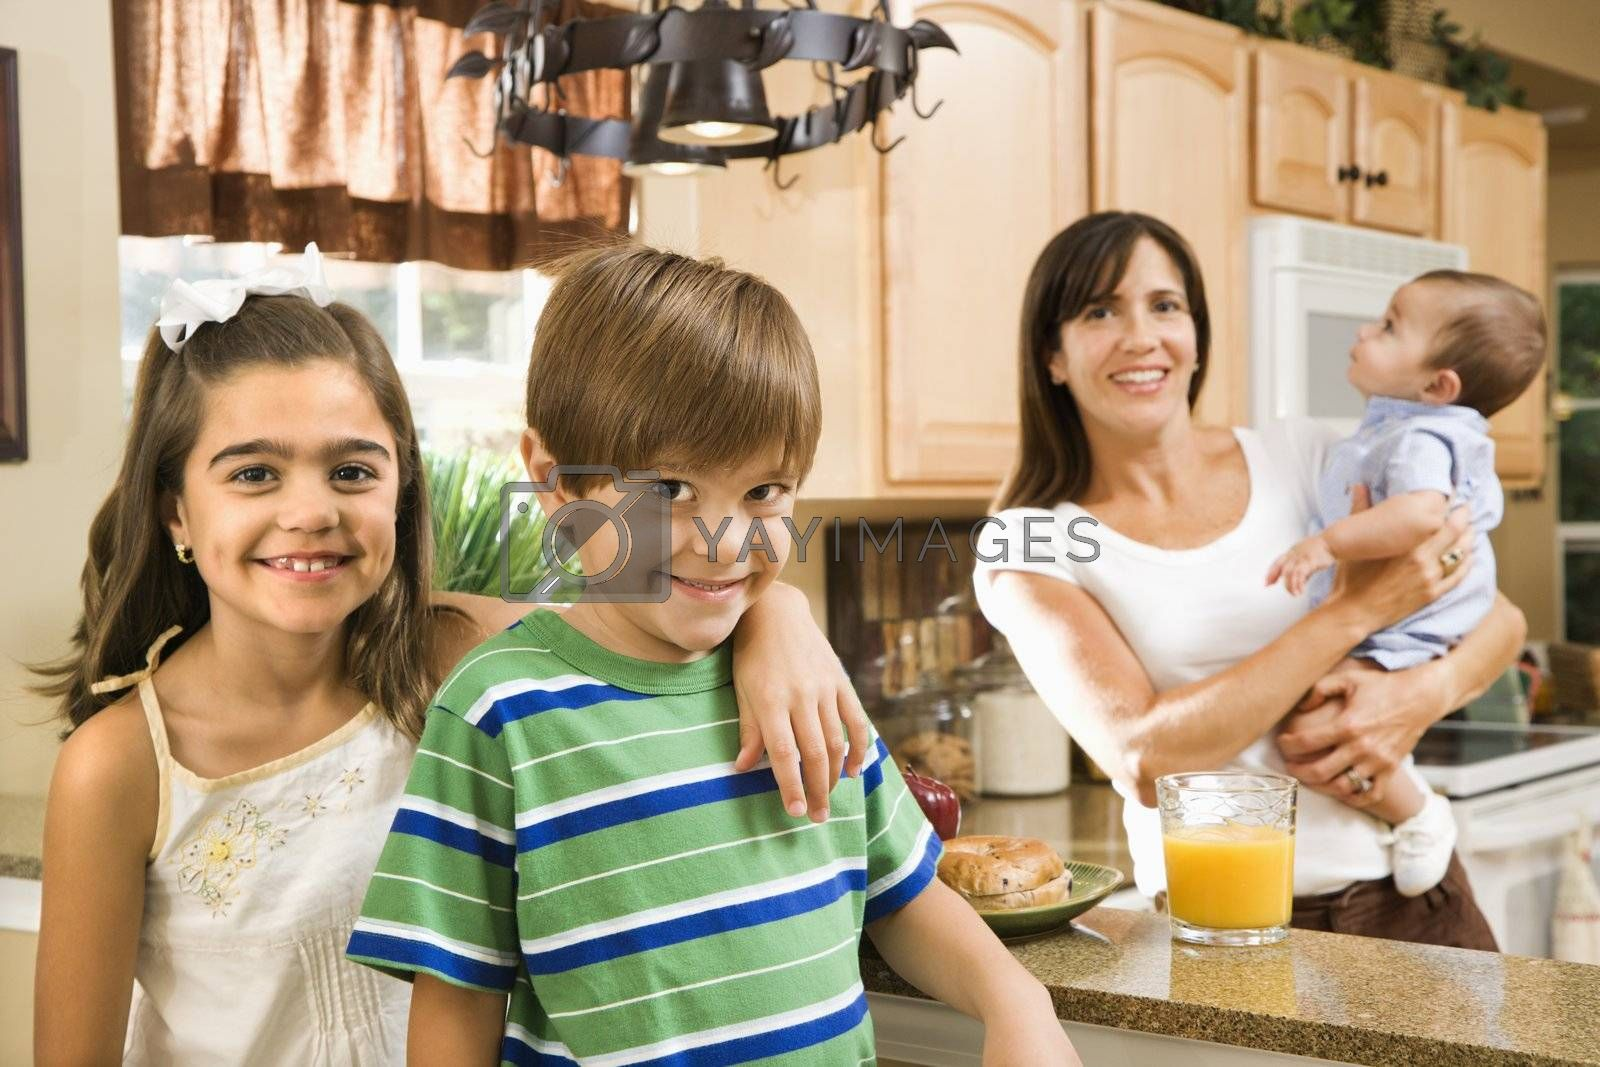 Hispanic mother and children smiling at viewer in kitchen.